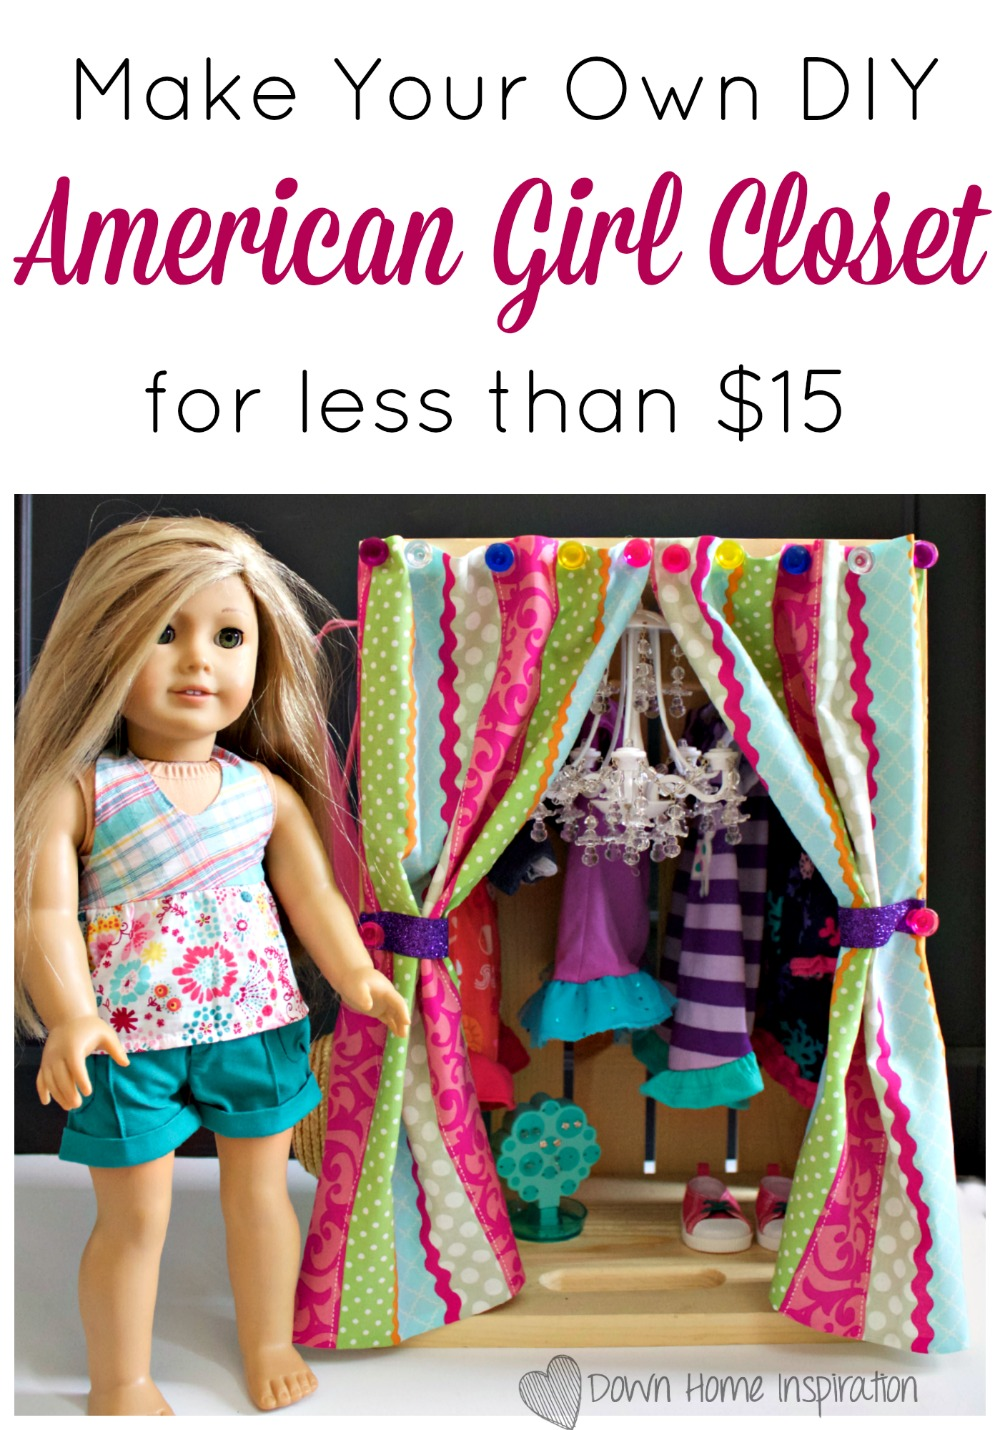 Make Your Own Diy American Girl Closet For Less Than 15